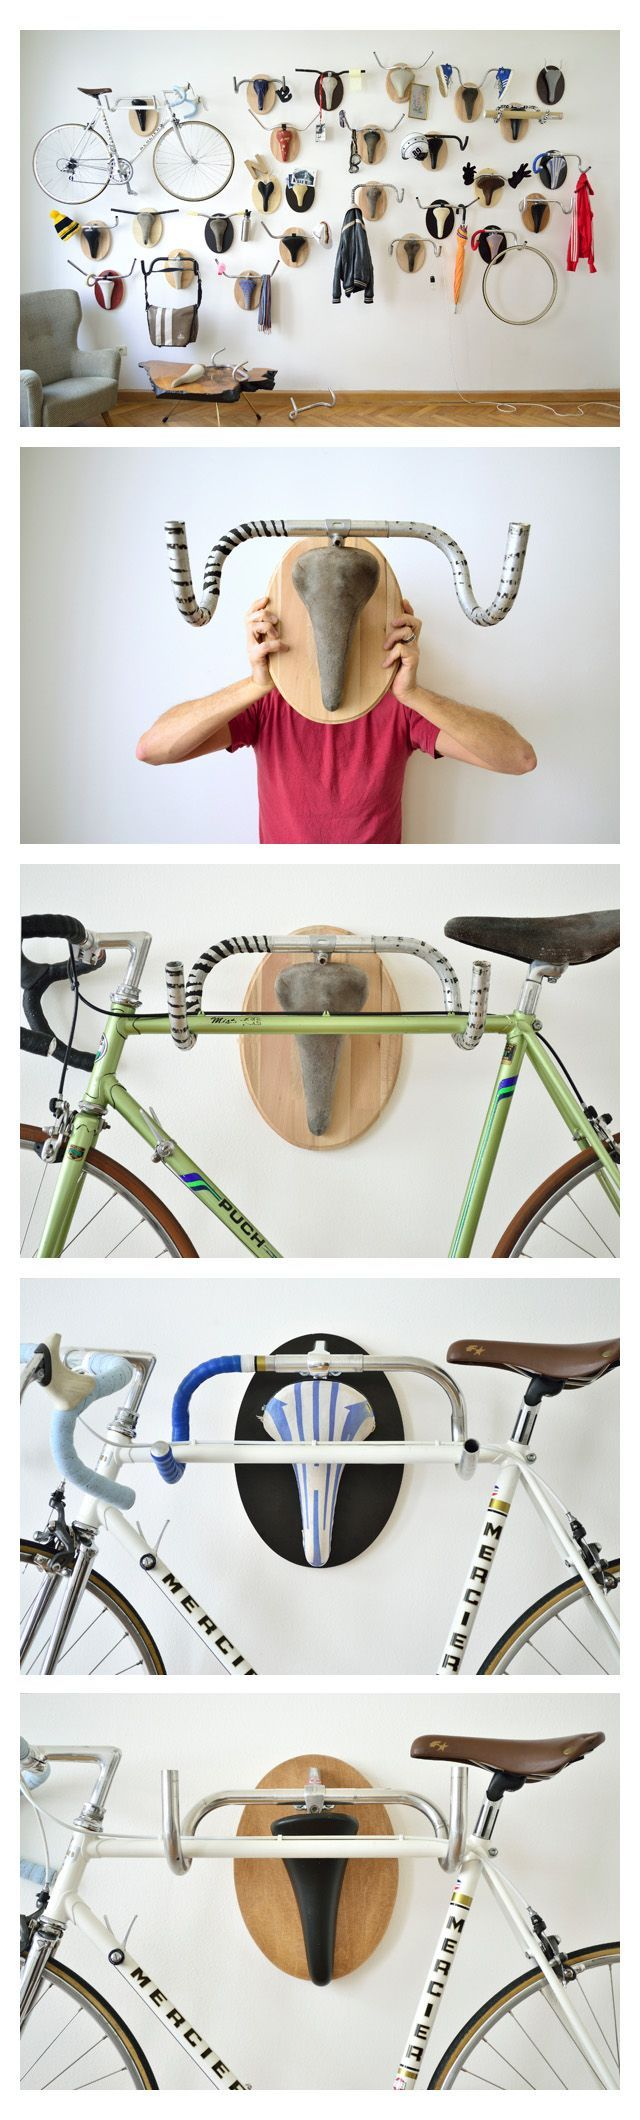 Almost like a skull rack- but a bikes bar and seat as a current bike (or anything) rack!: